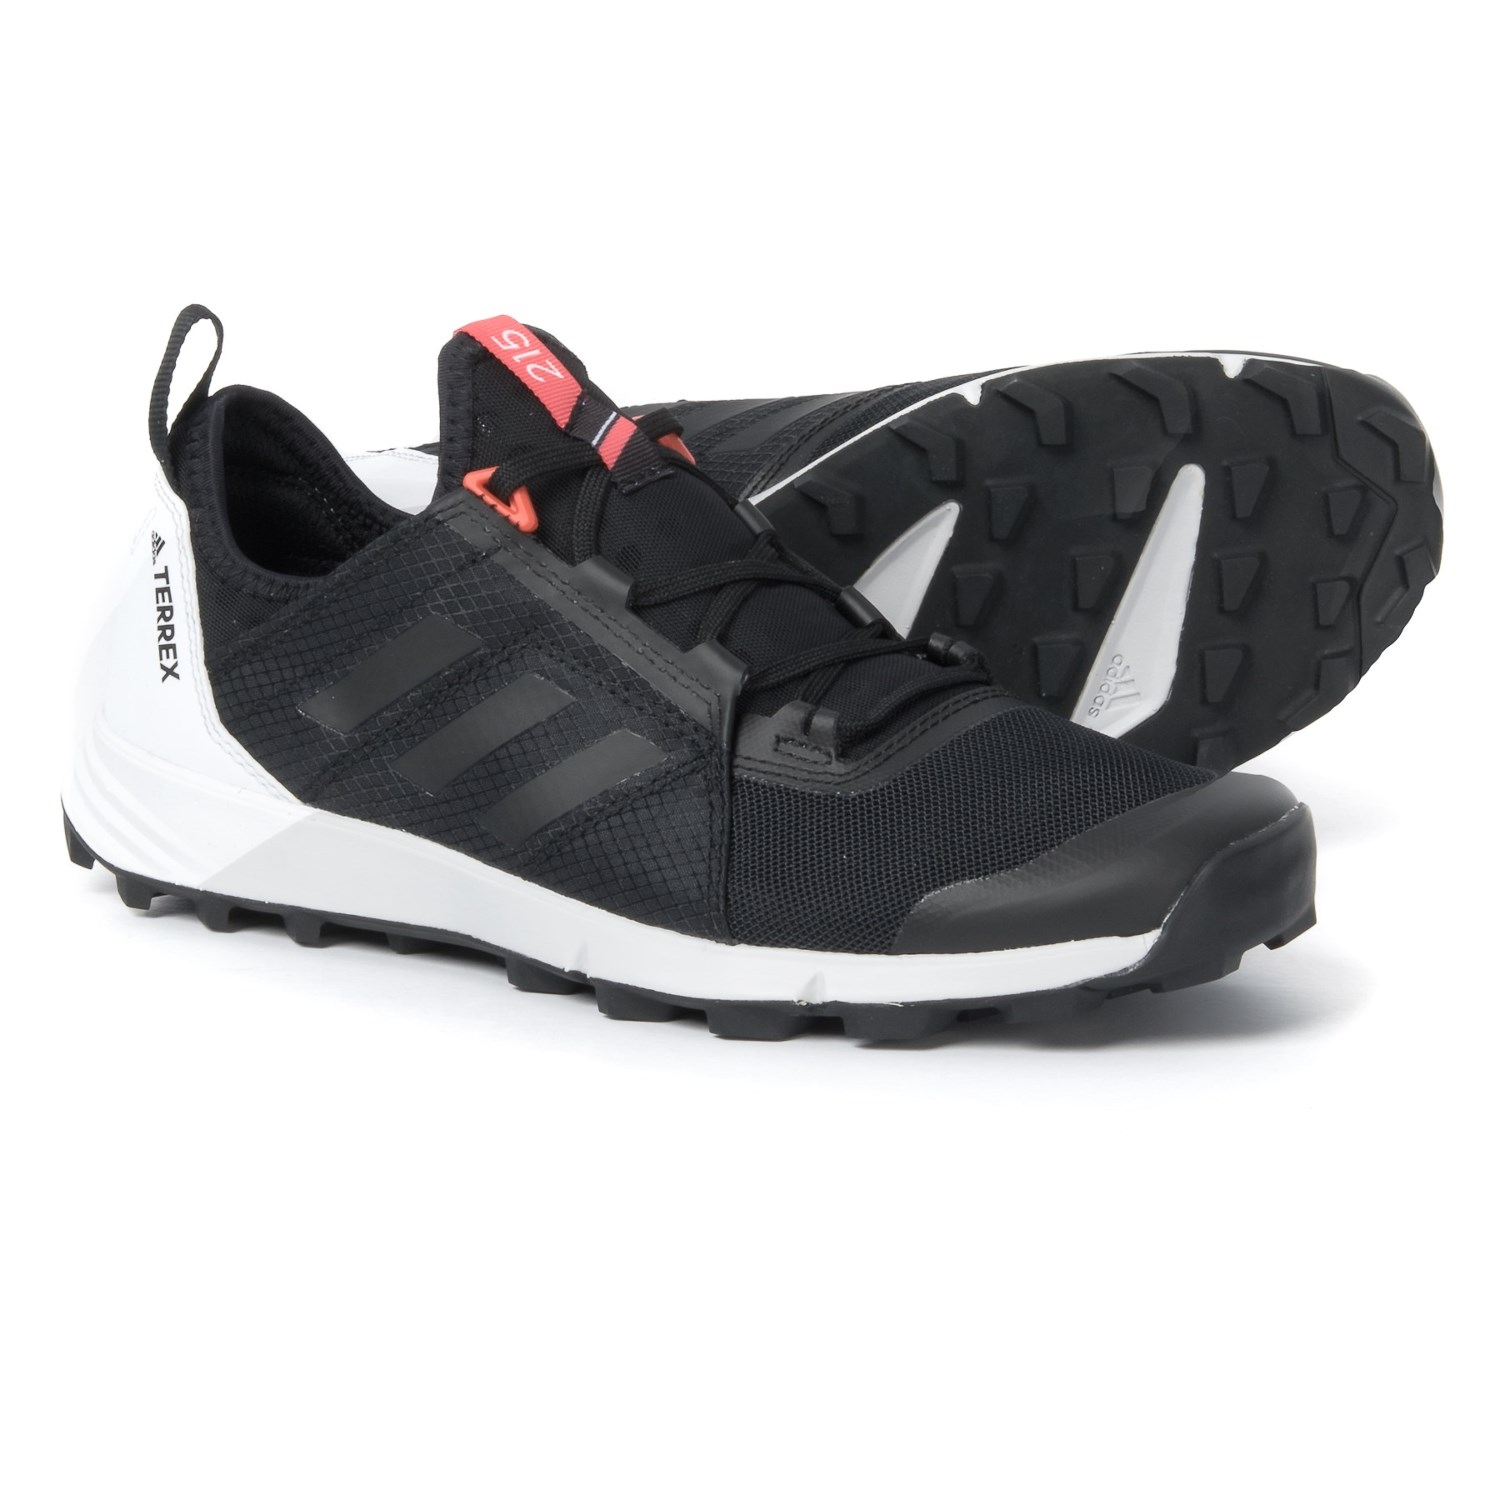 Las bacterias Inscribirse logo  adidas trail running shoes womens Online Shopping for Women, Men, Kids  Fashion & Lifestyle|Free Delivery & Returns! -